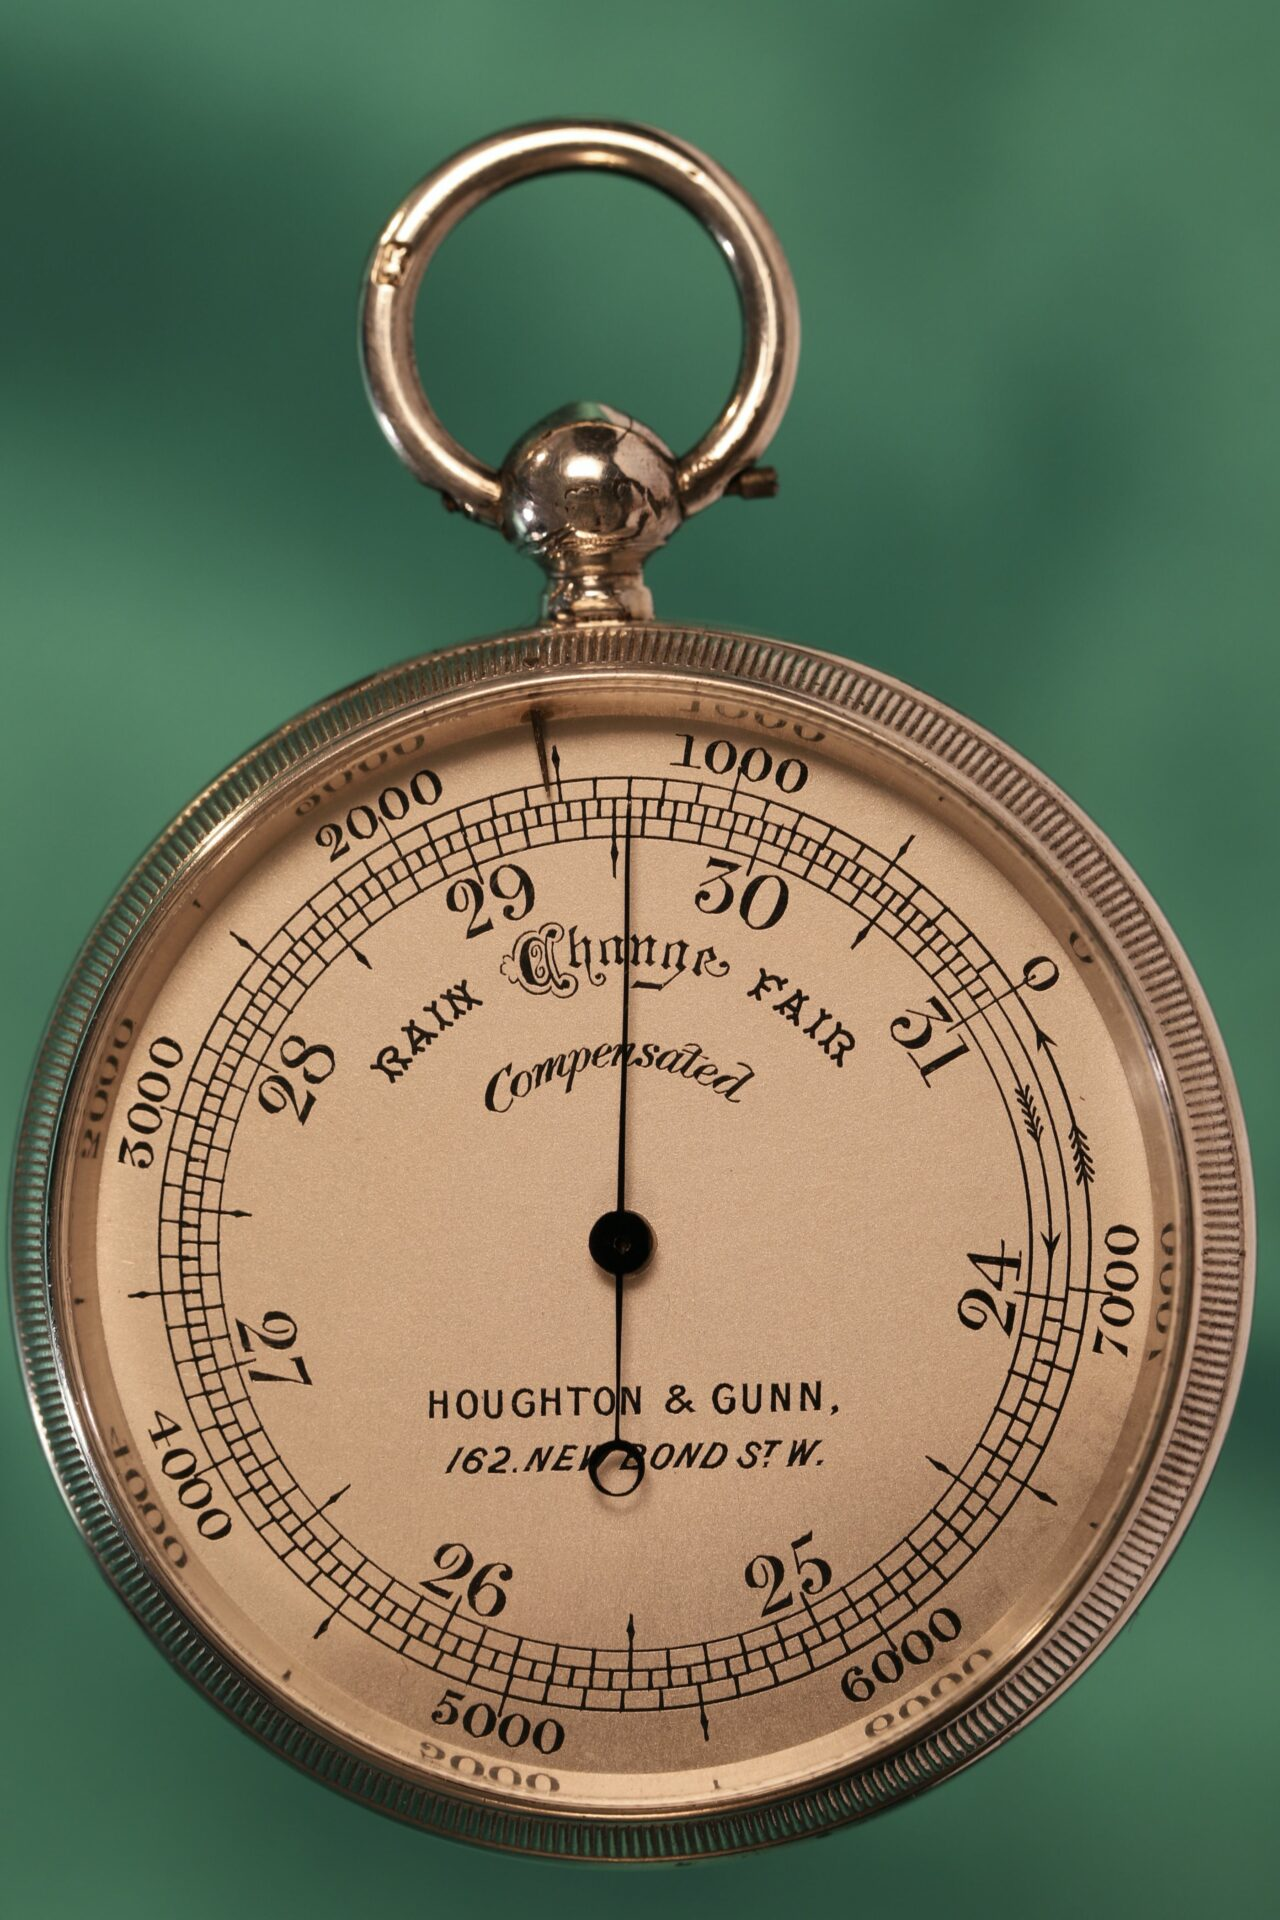 Image of front of pocket barometer from Houghton & Gunn Silver Travel Compendium c1895